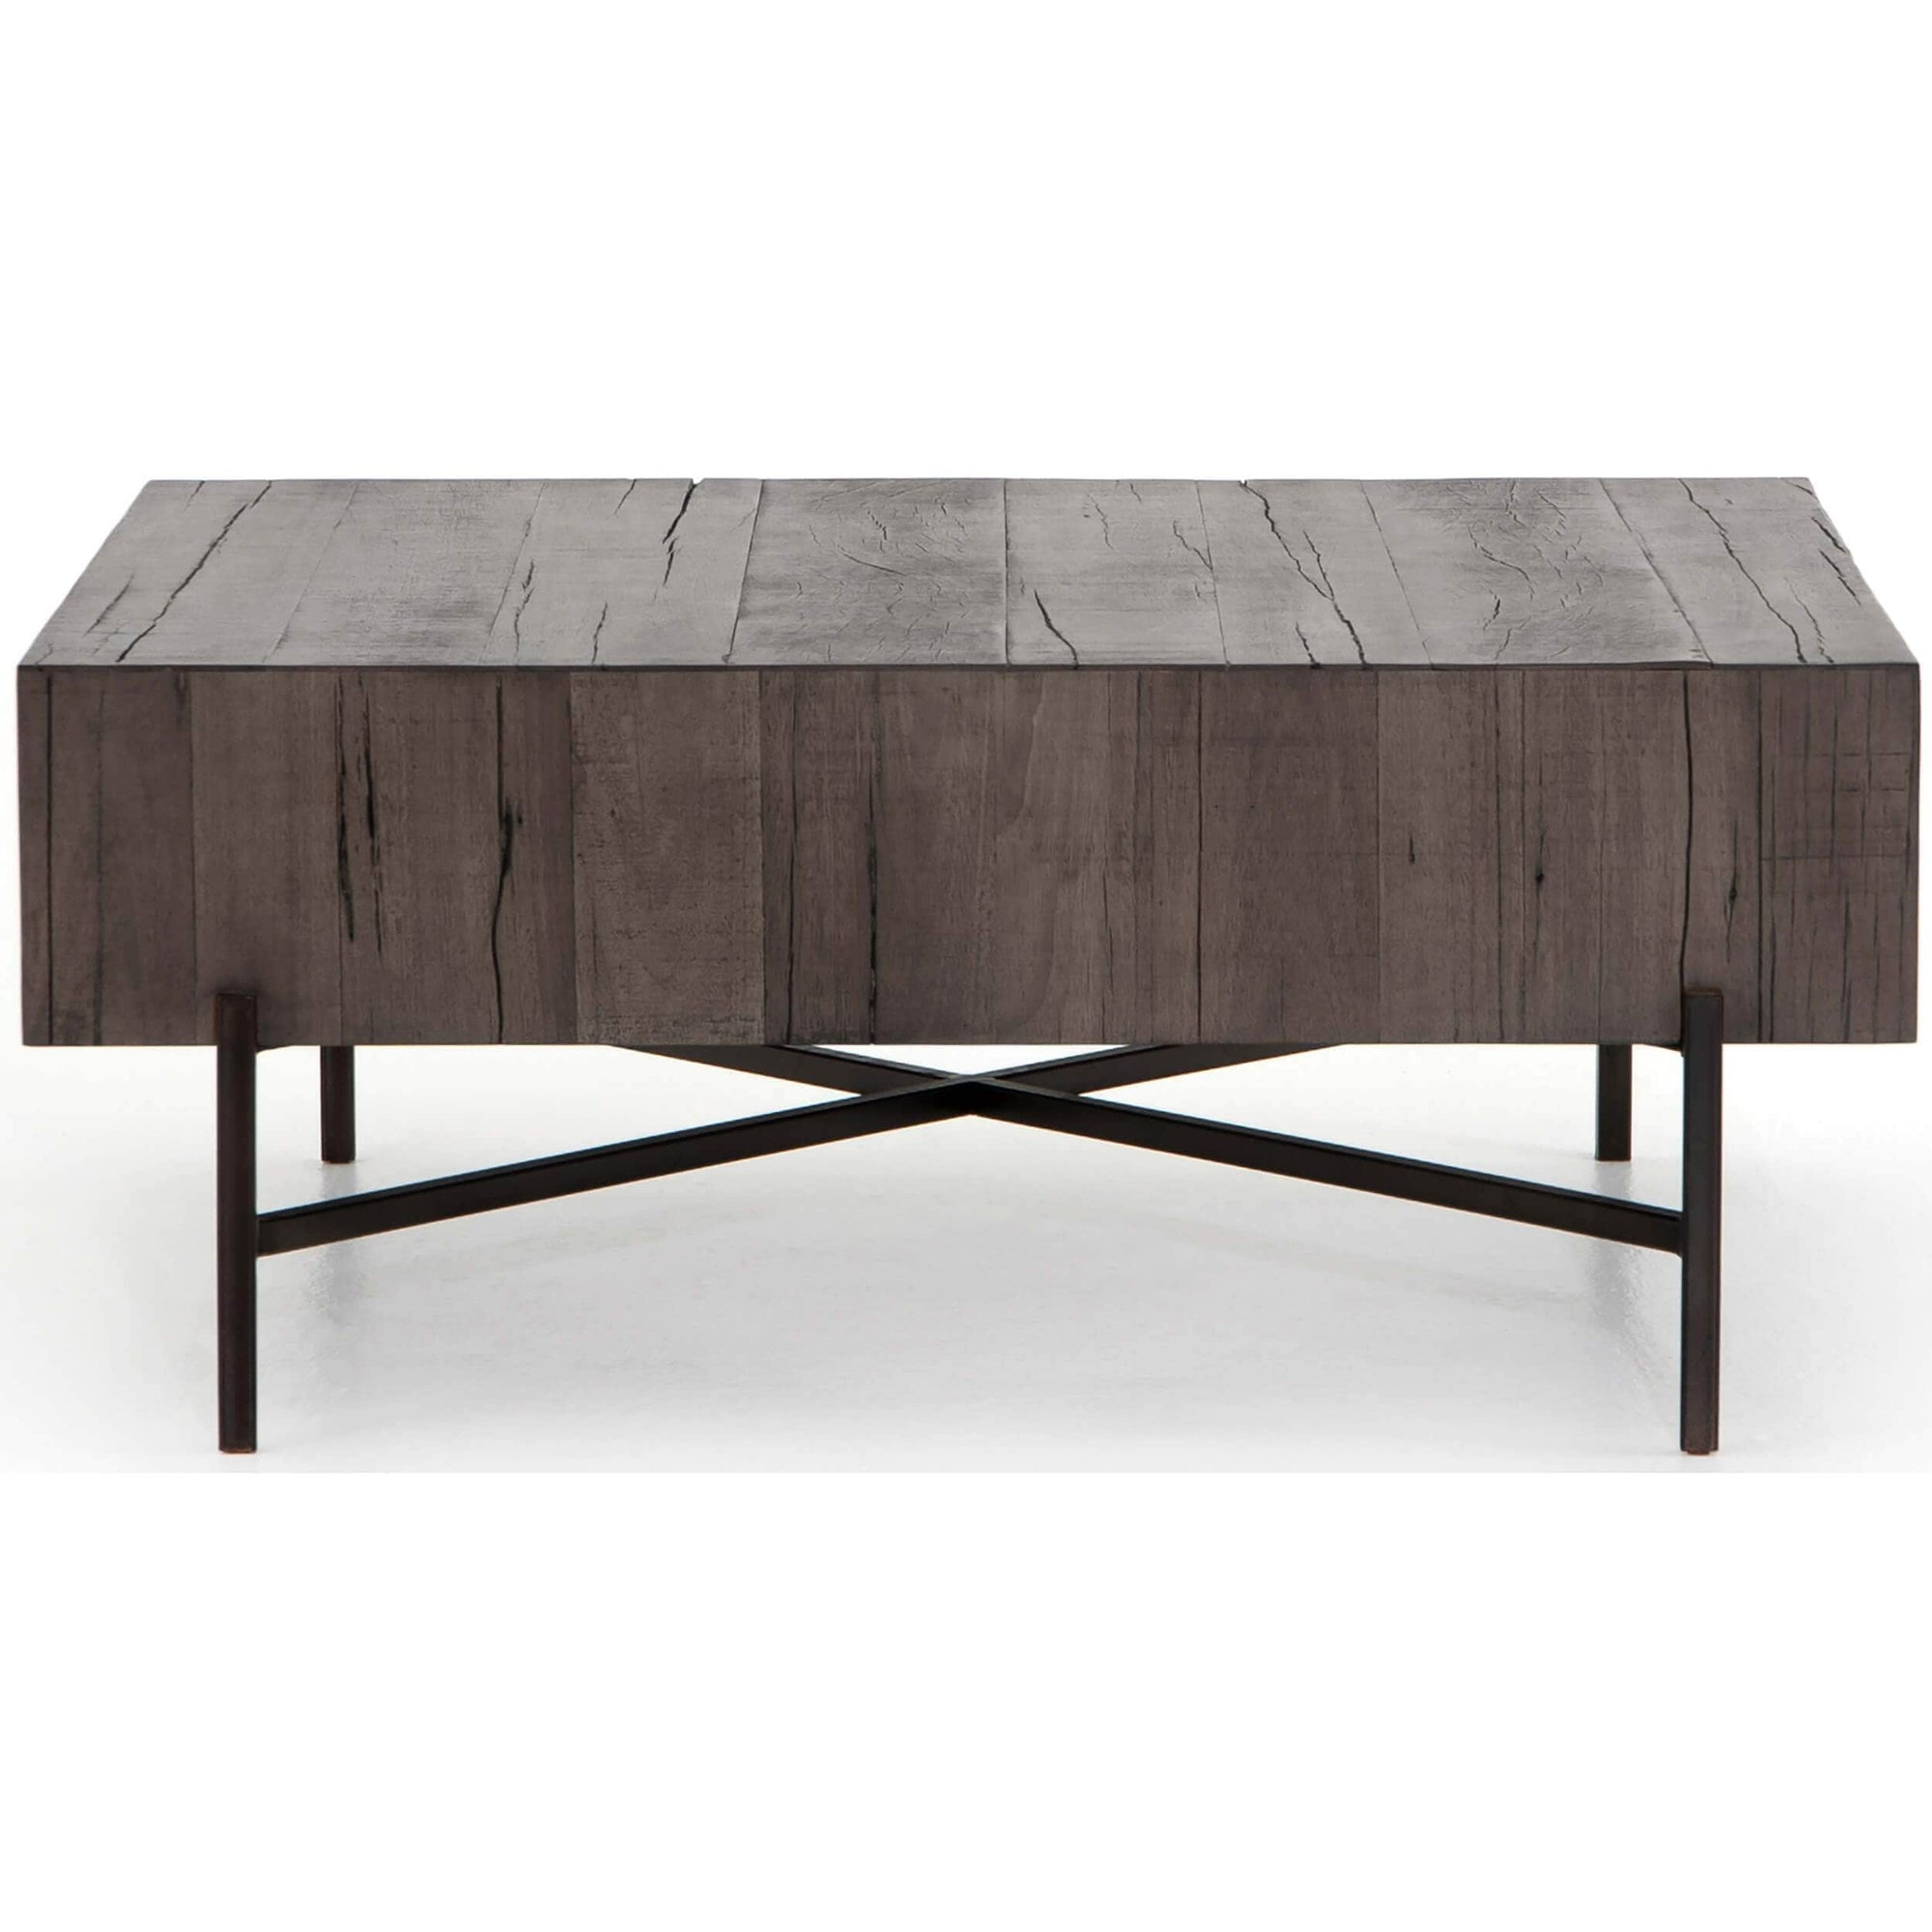 Tinsley Square Coffee Table Distressed Grey High Fashion Home